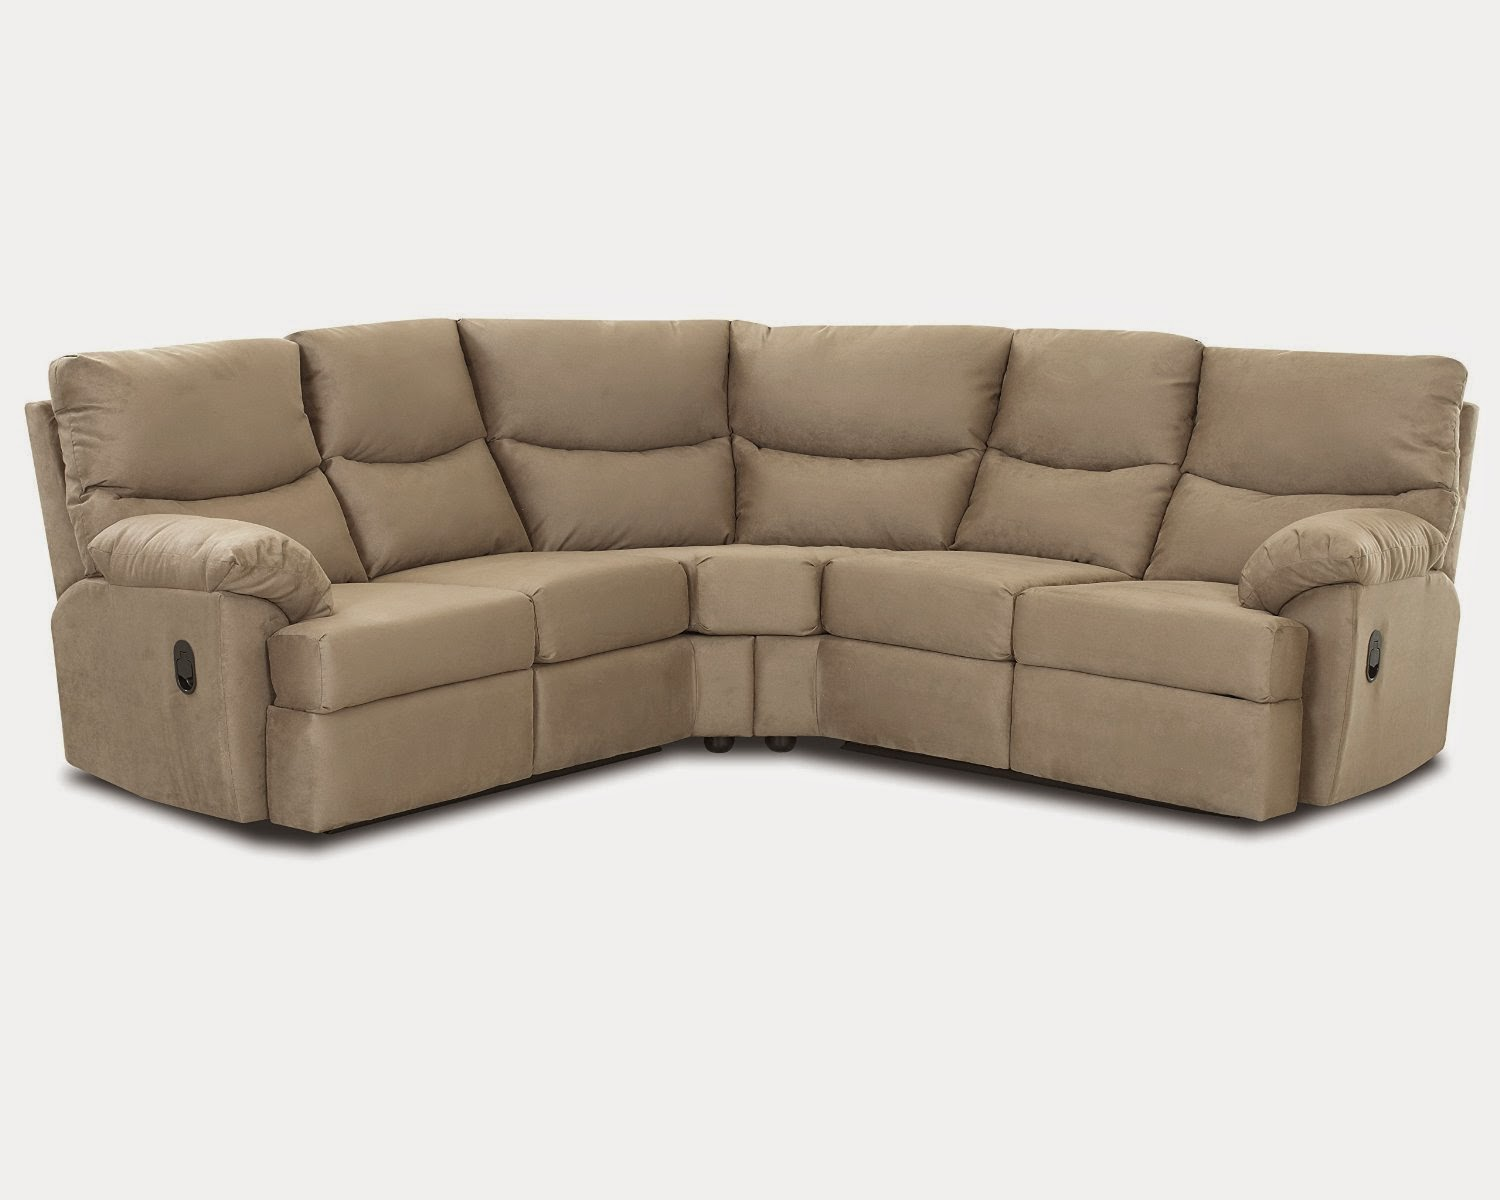 Cheap recliner sofas for sale april 2015 for Furniture sofa sale